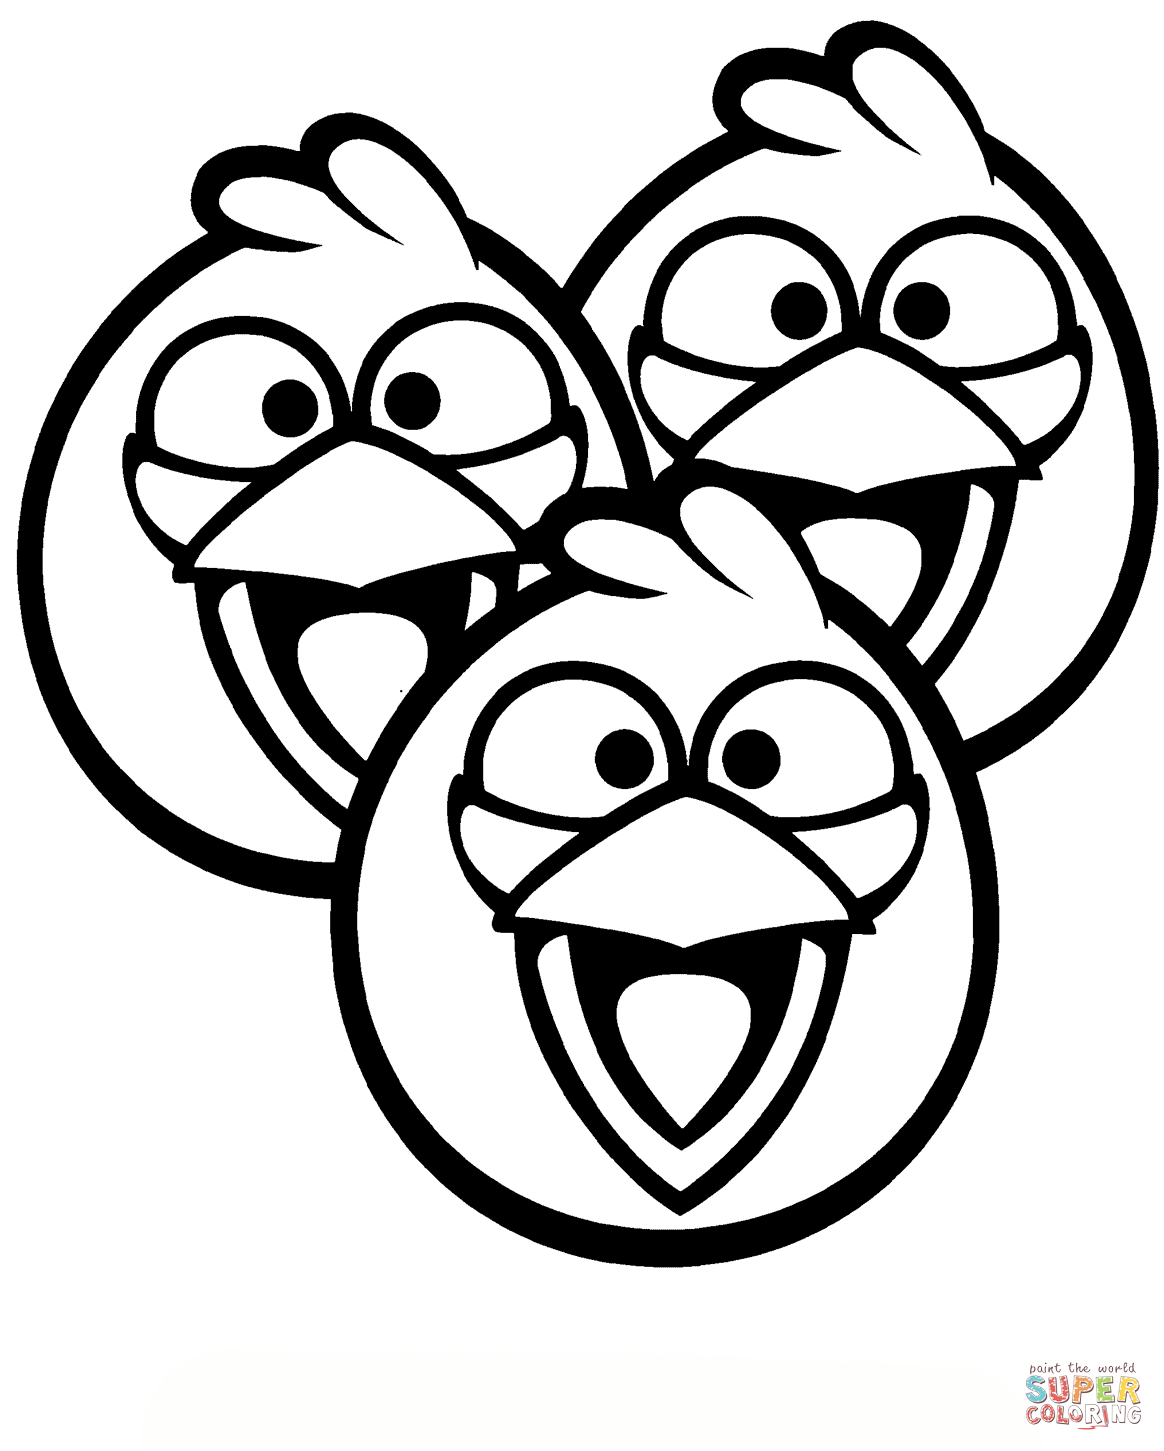 1164x1451 Angry Bird Coloring Pages